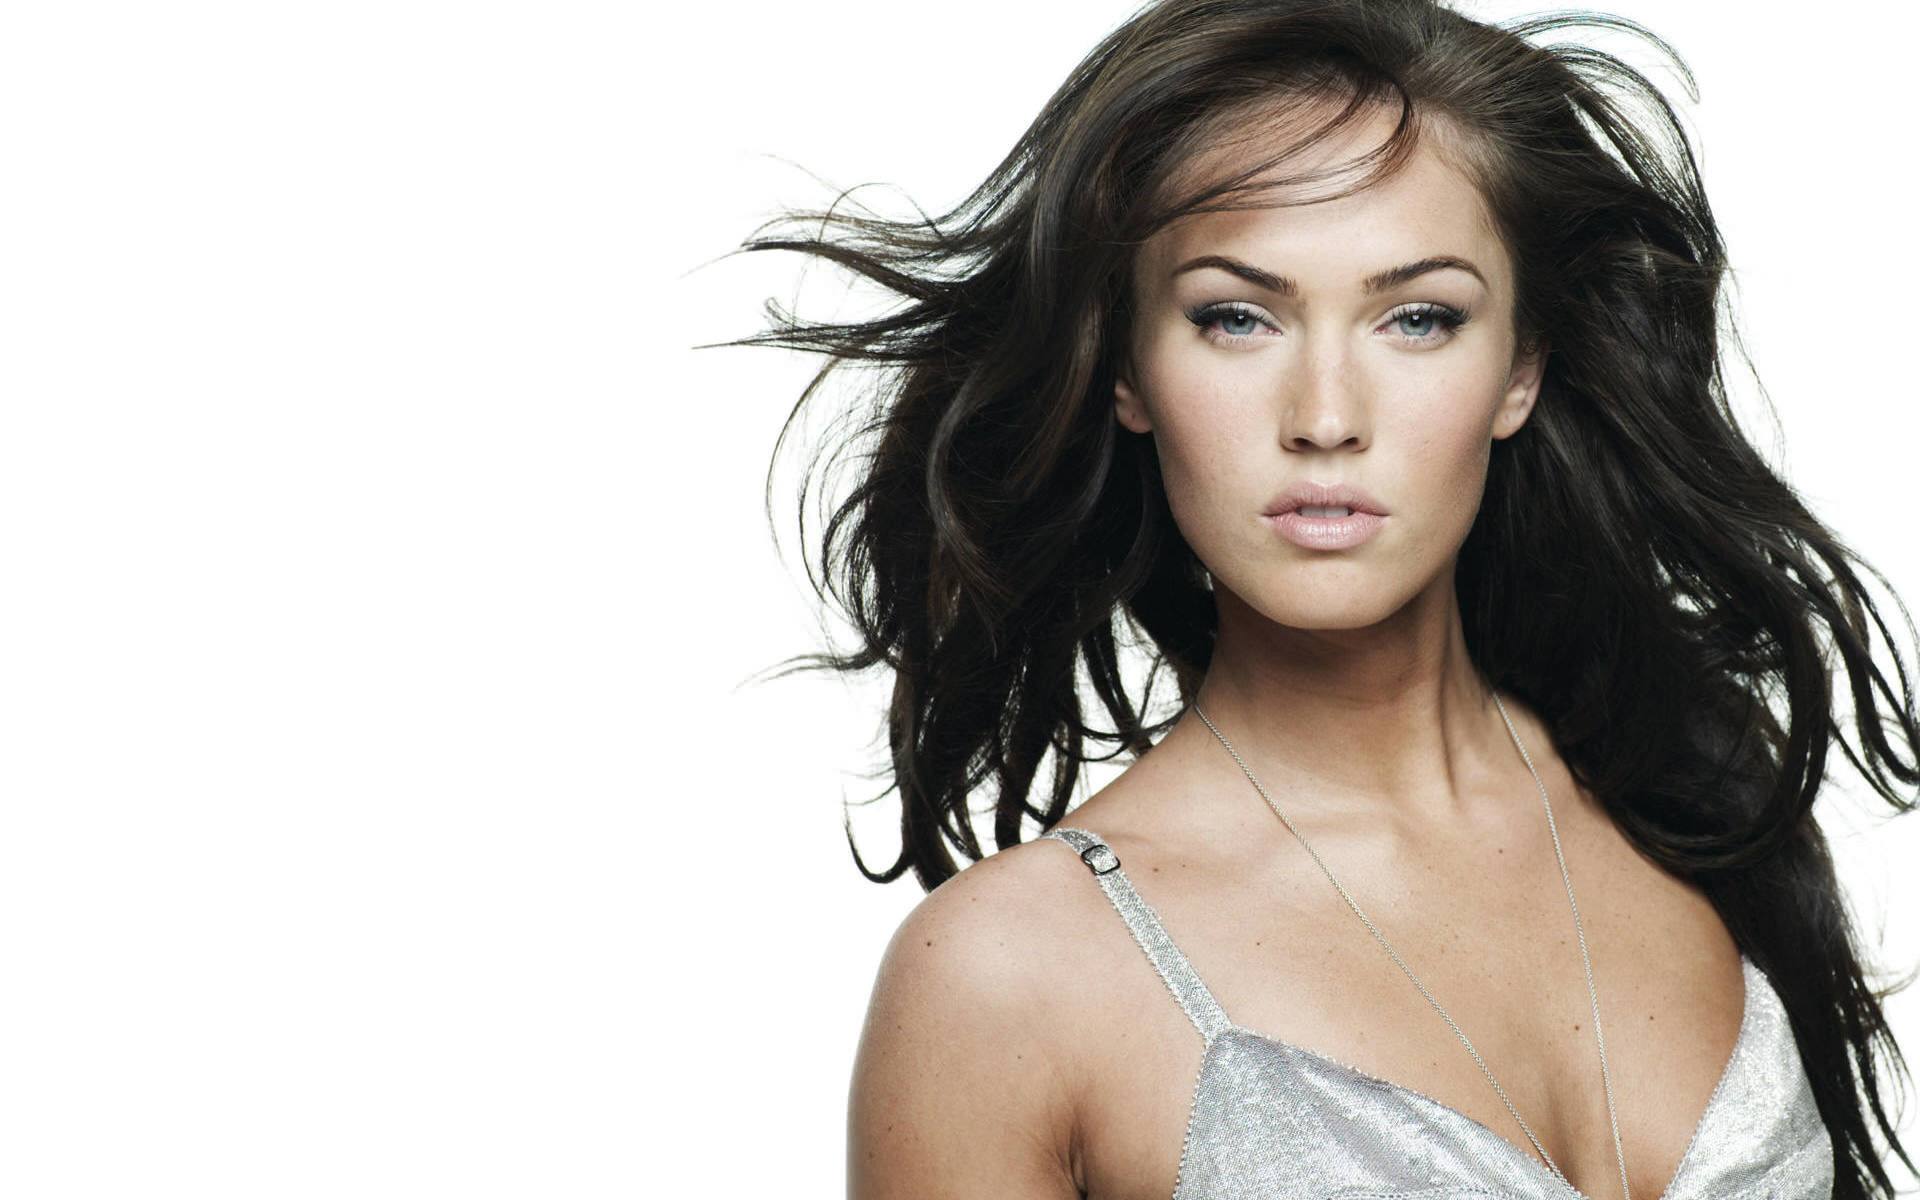 megan fox wallpapers high resolution wallpaper celebrity 1920x1200